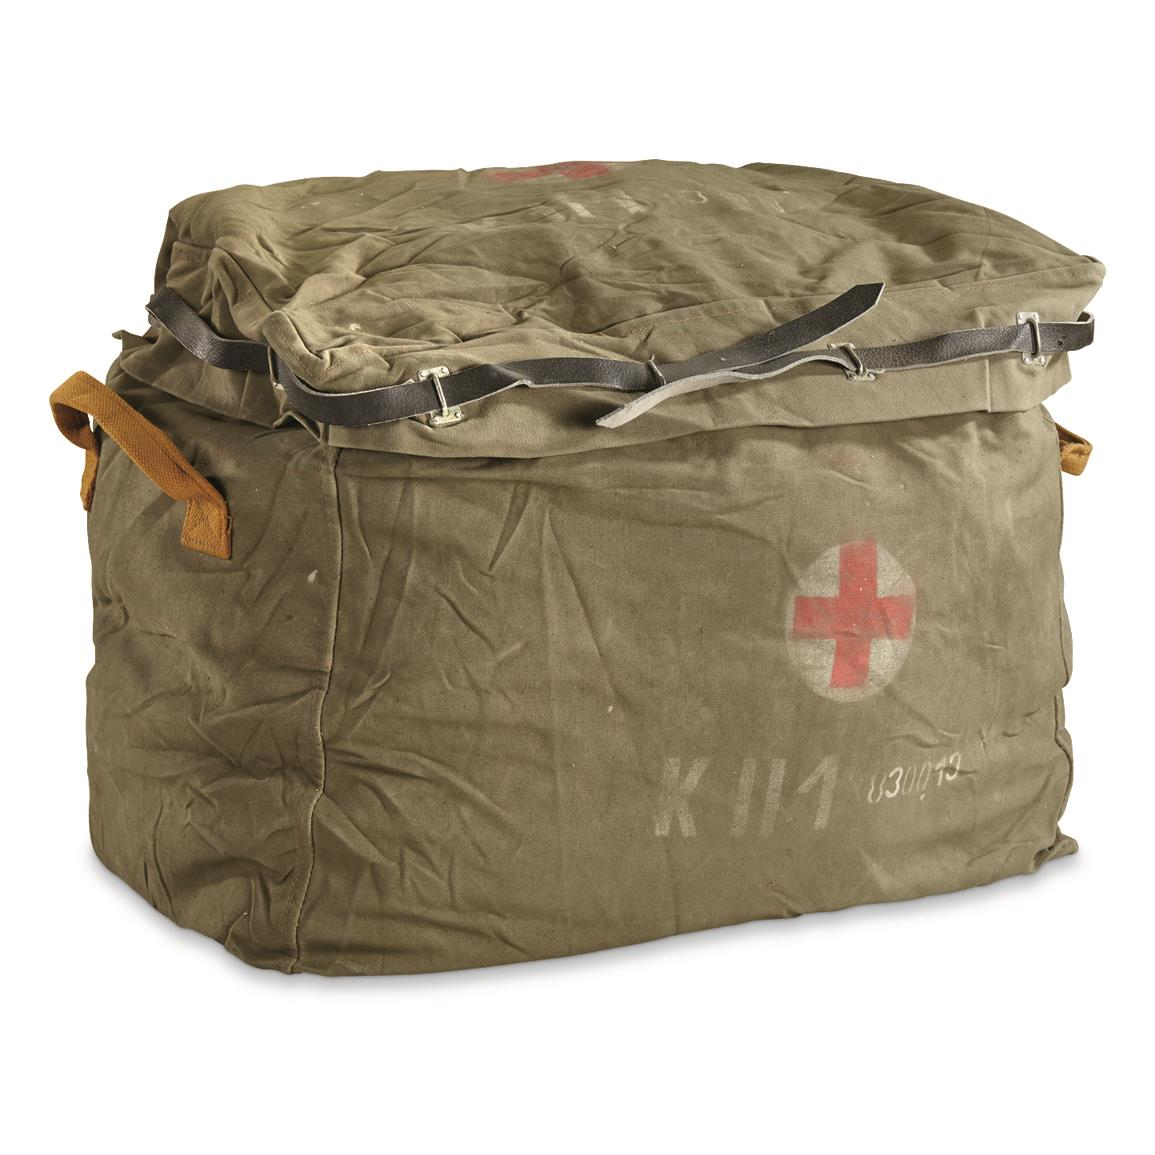 Hungarian Military Surplus First Aid Parachute Bag Used